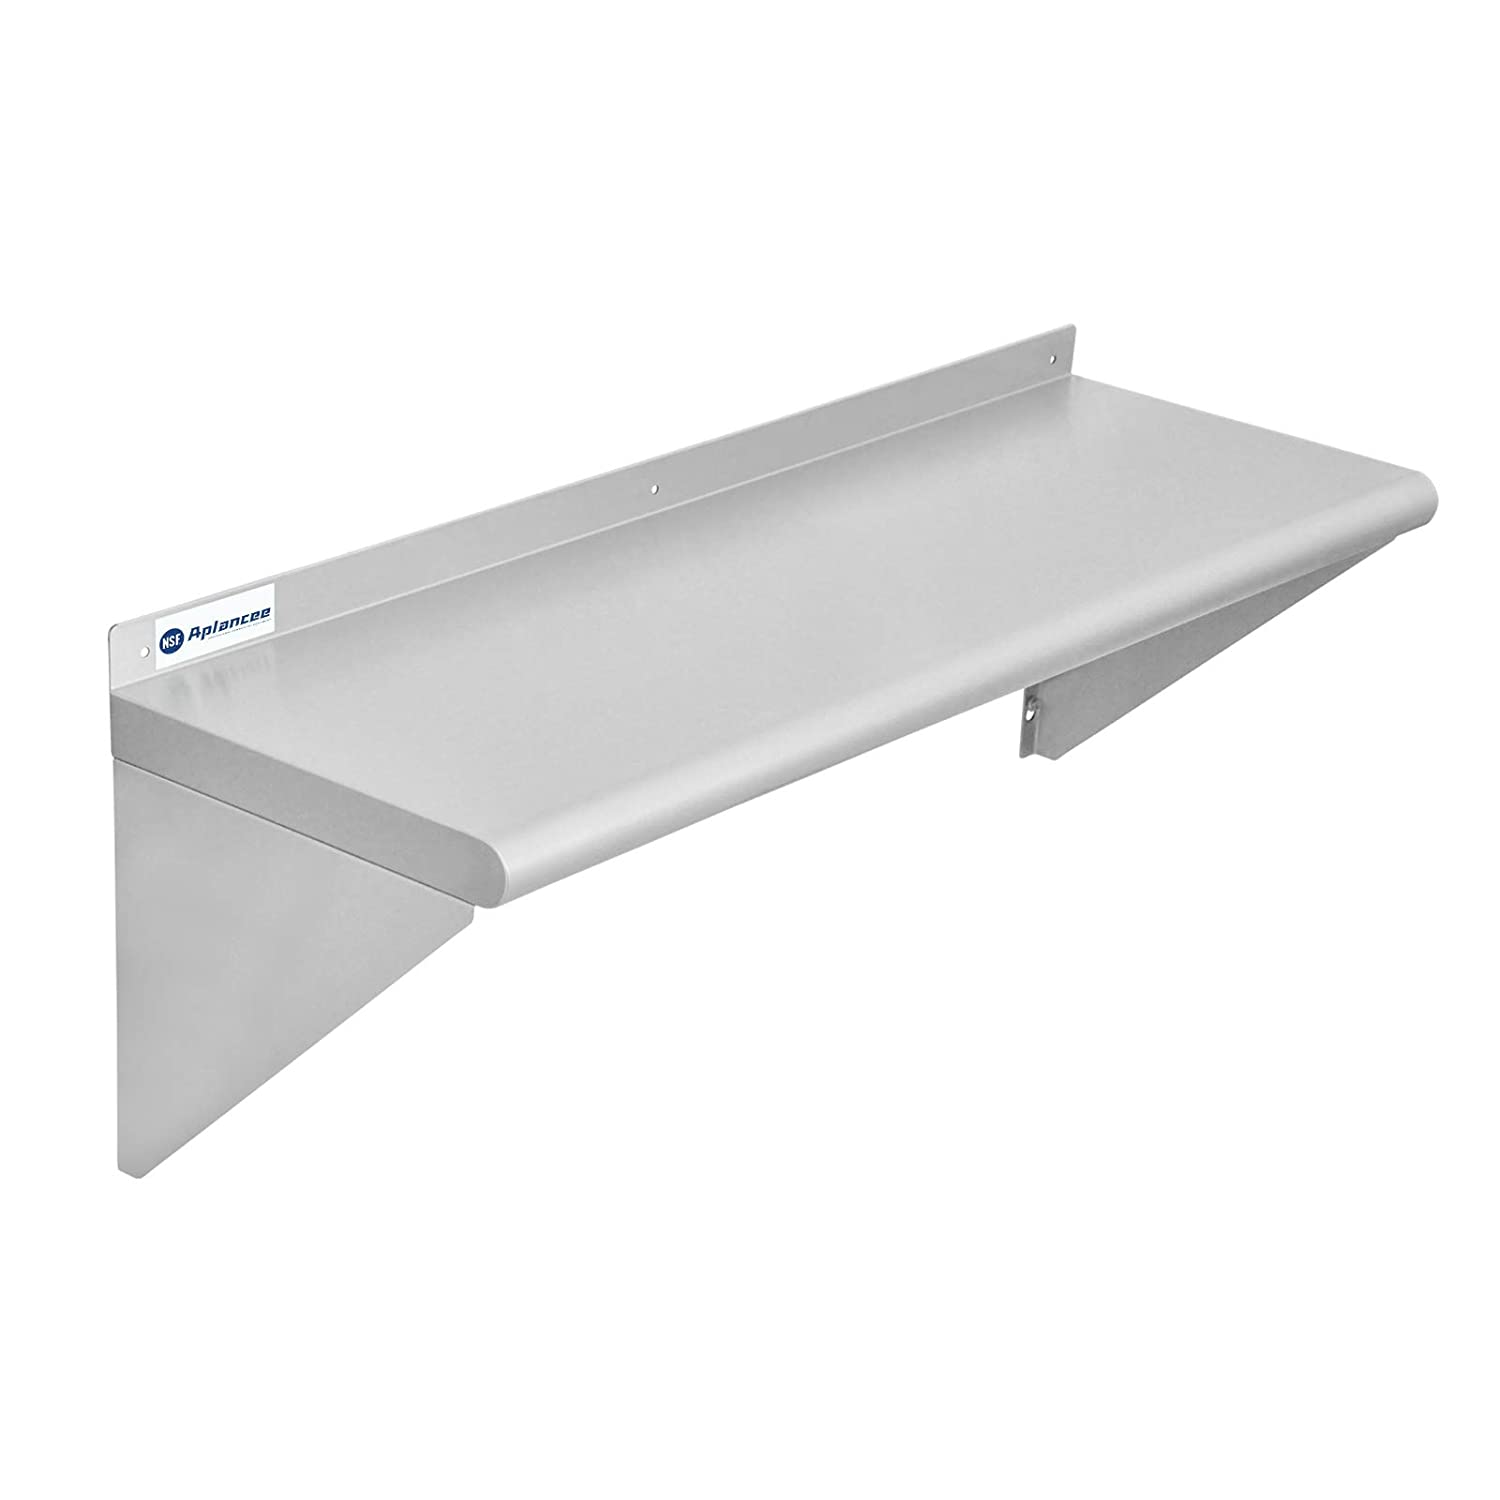 Aplancee Stainless Steel Commercial Shelf w/Backsplash 12x36 Inches Wall Mounted Shelving Rack for Restaurant, Fast Food and Home Kitchen